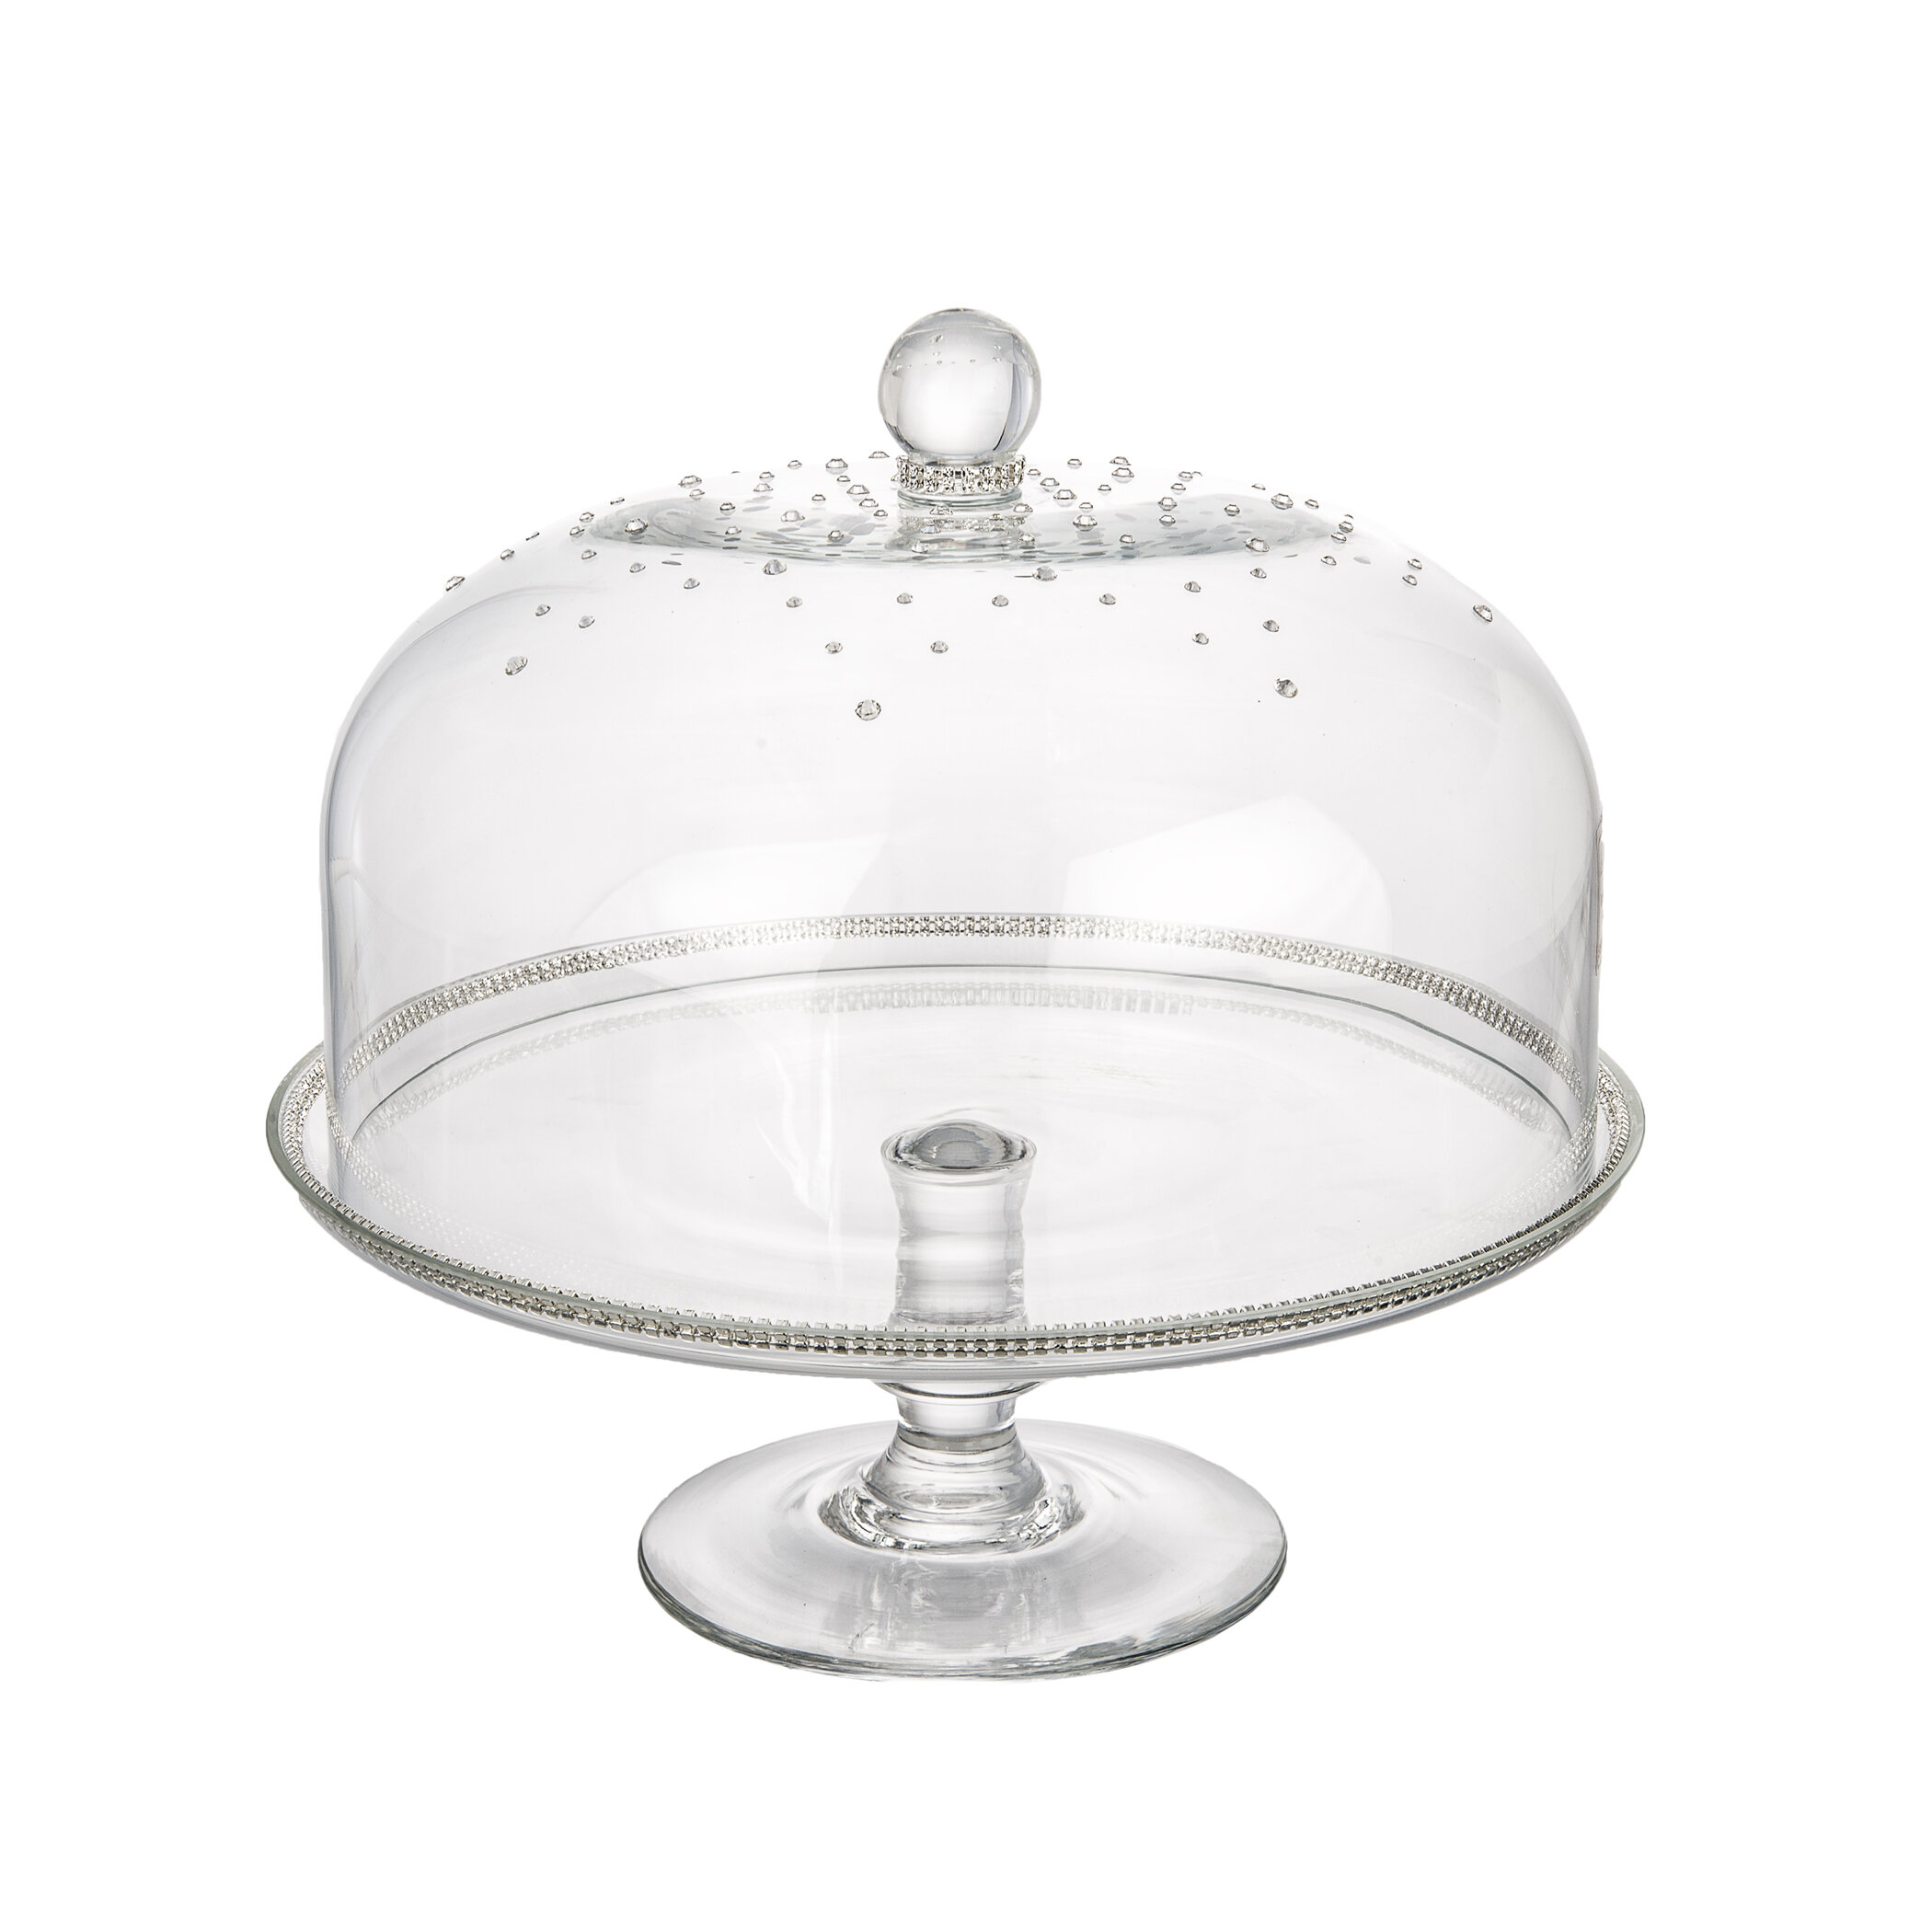 sc 1 st  Wayfair & ClassicTouch Glass Dome Cake Stand \u0026 Reviews | Wayfair